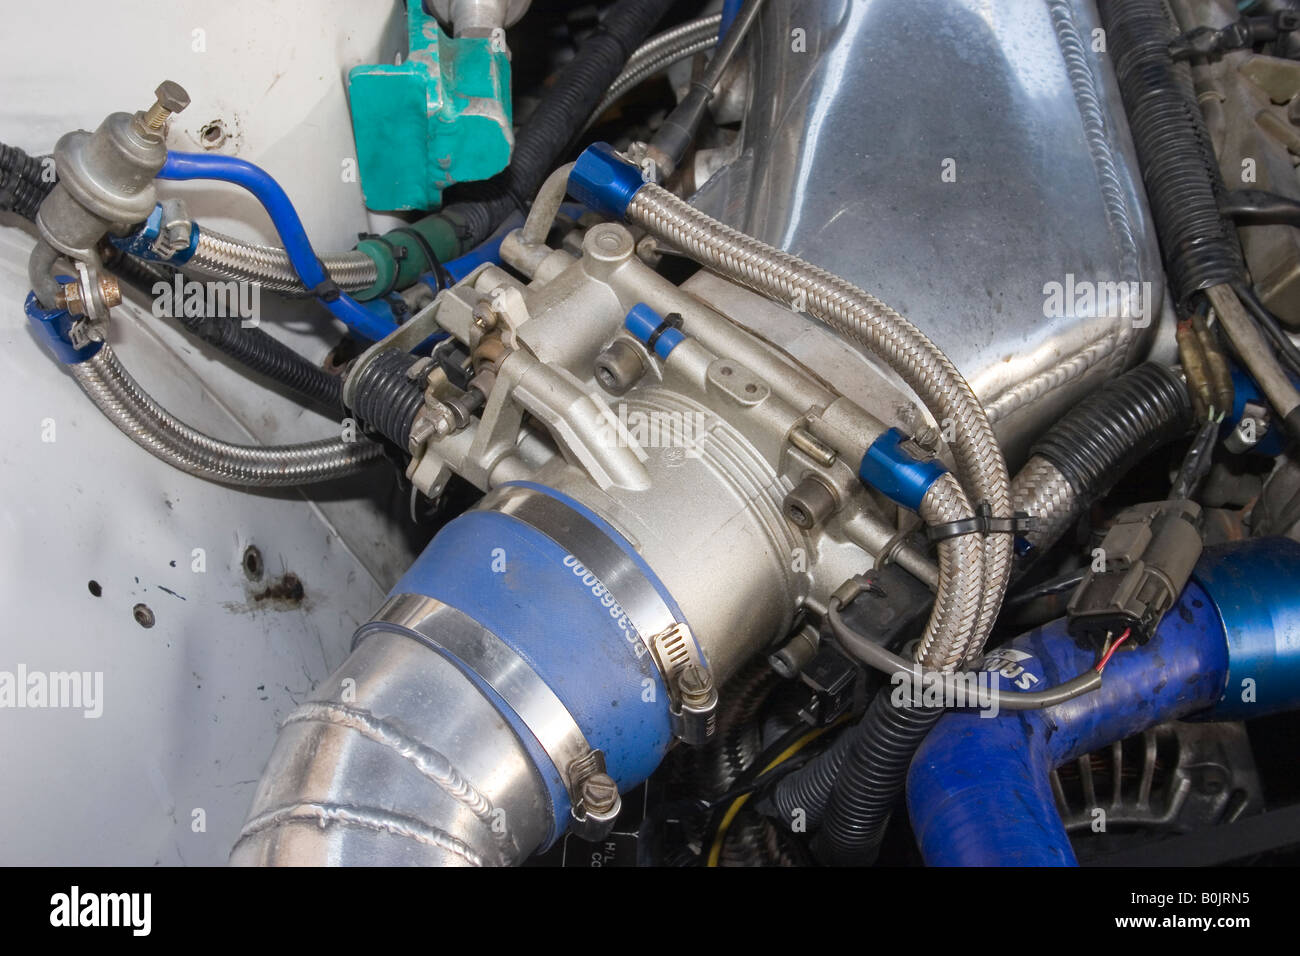 throttle body on a modified Japanese sports car Stock Photo